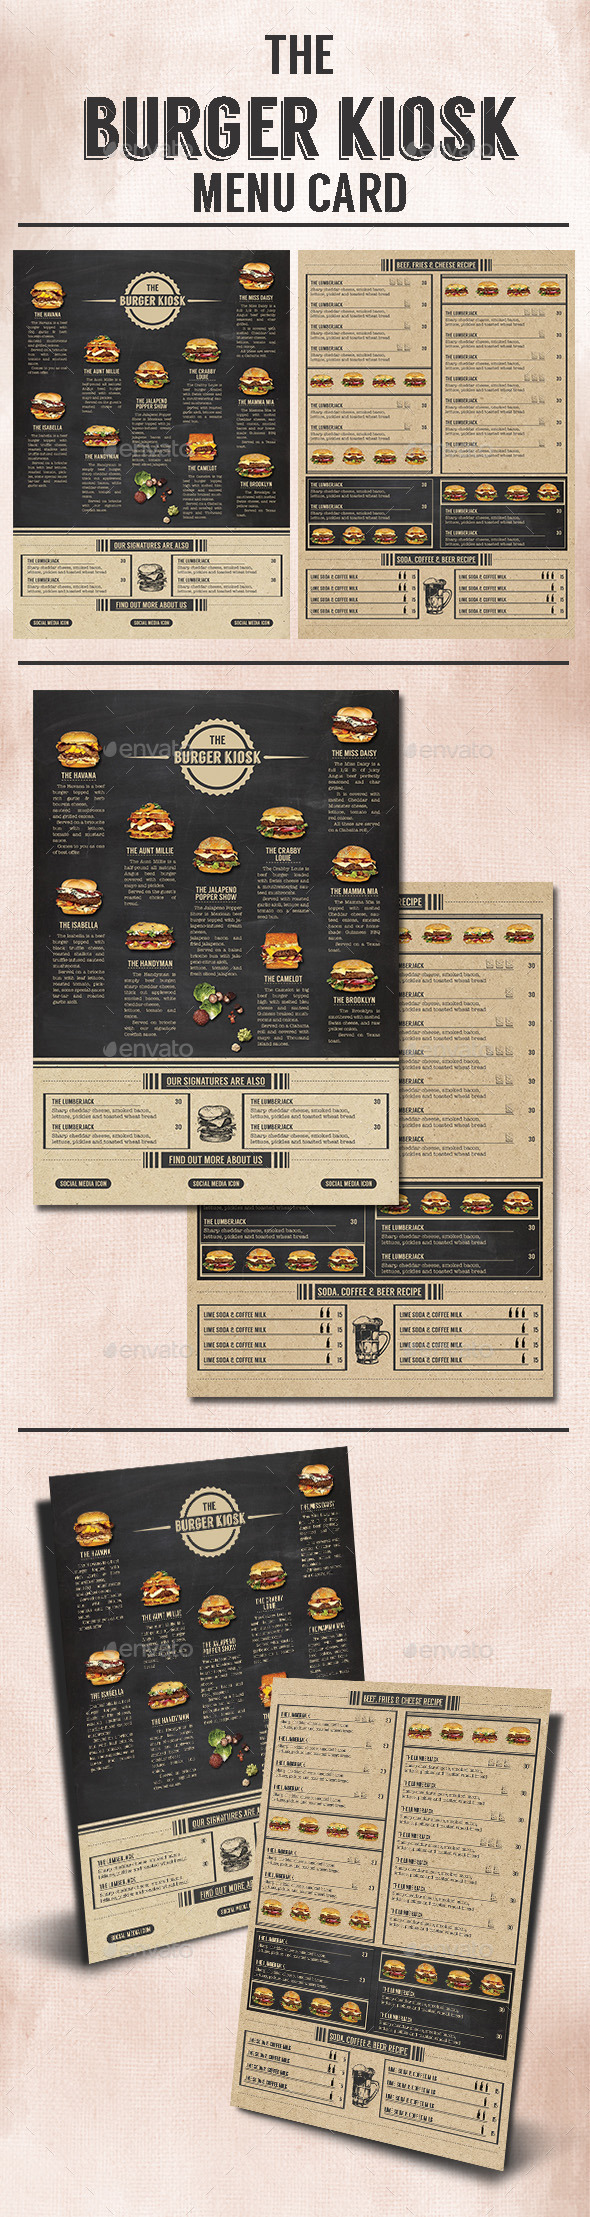 The Burger Kiosk Menu